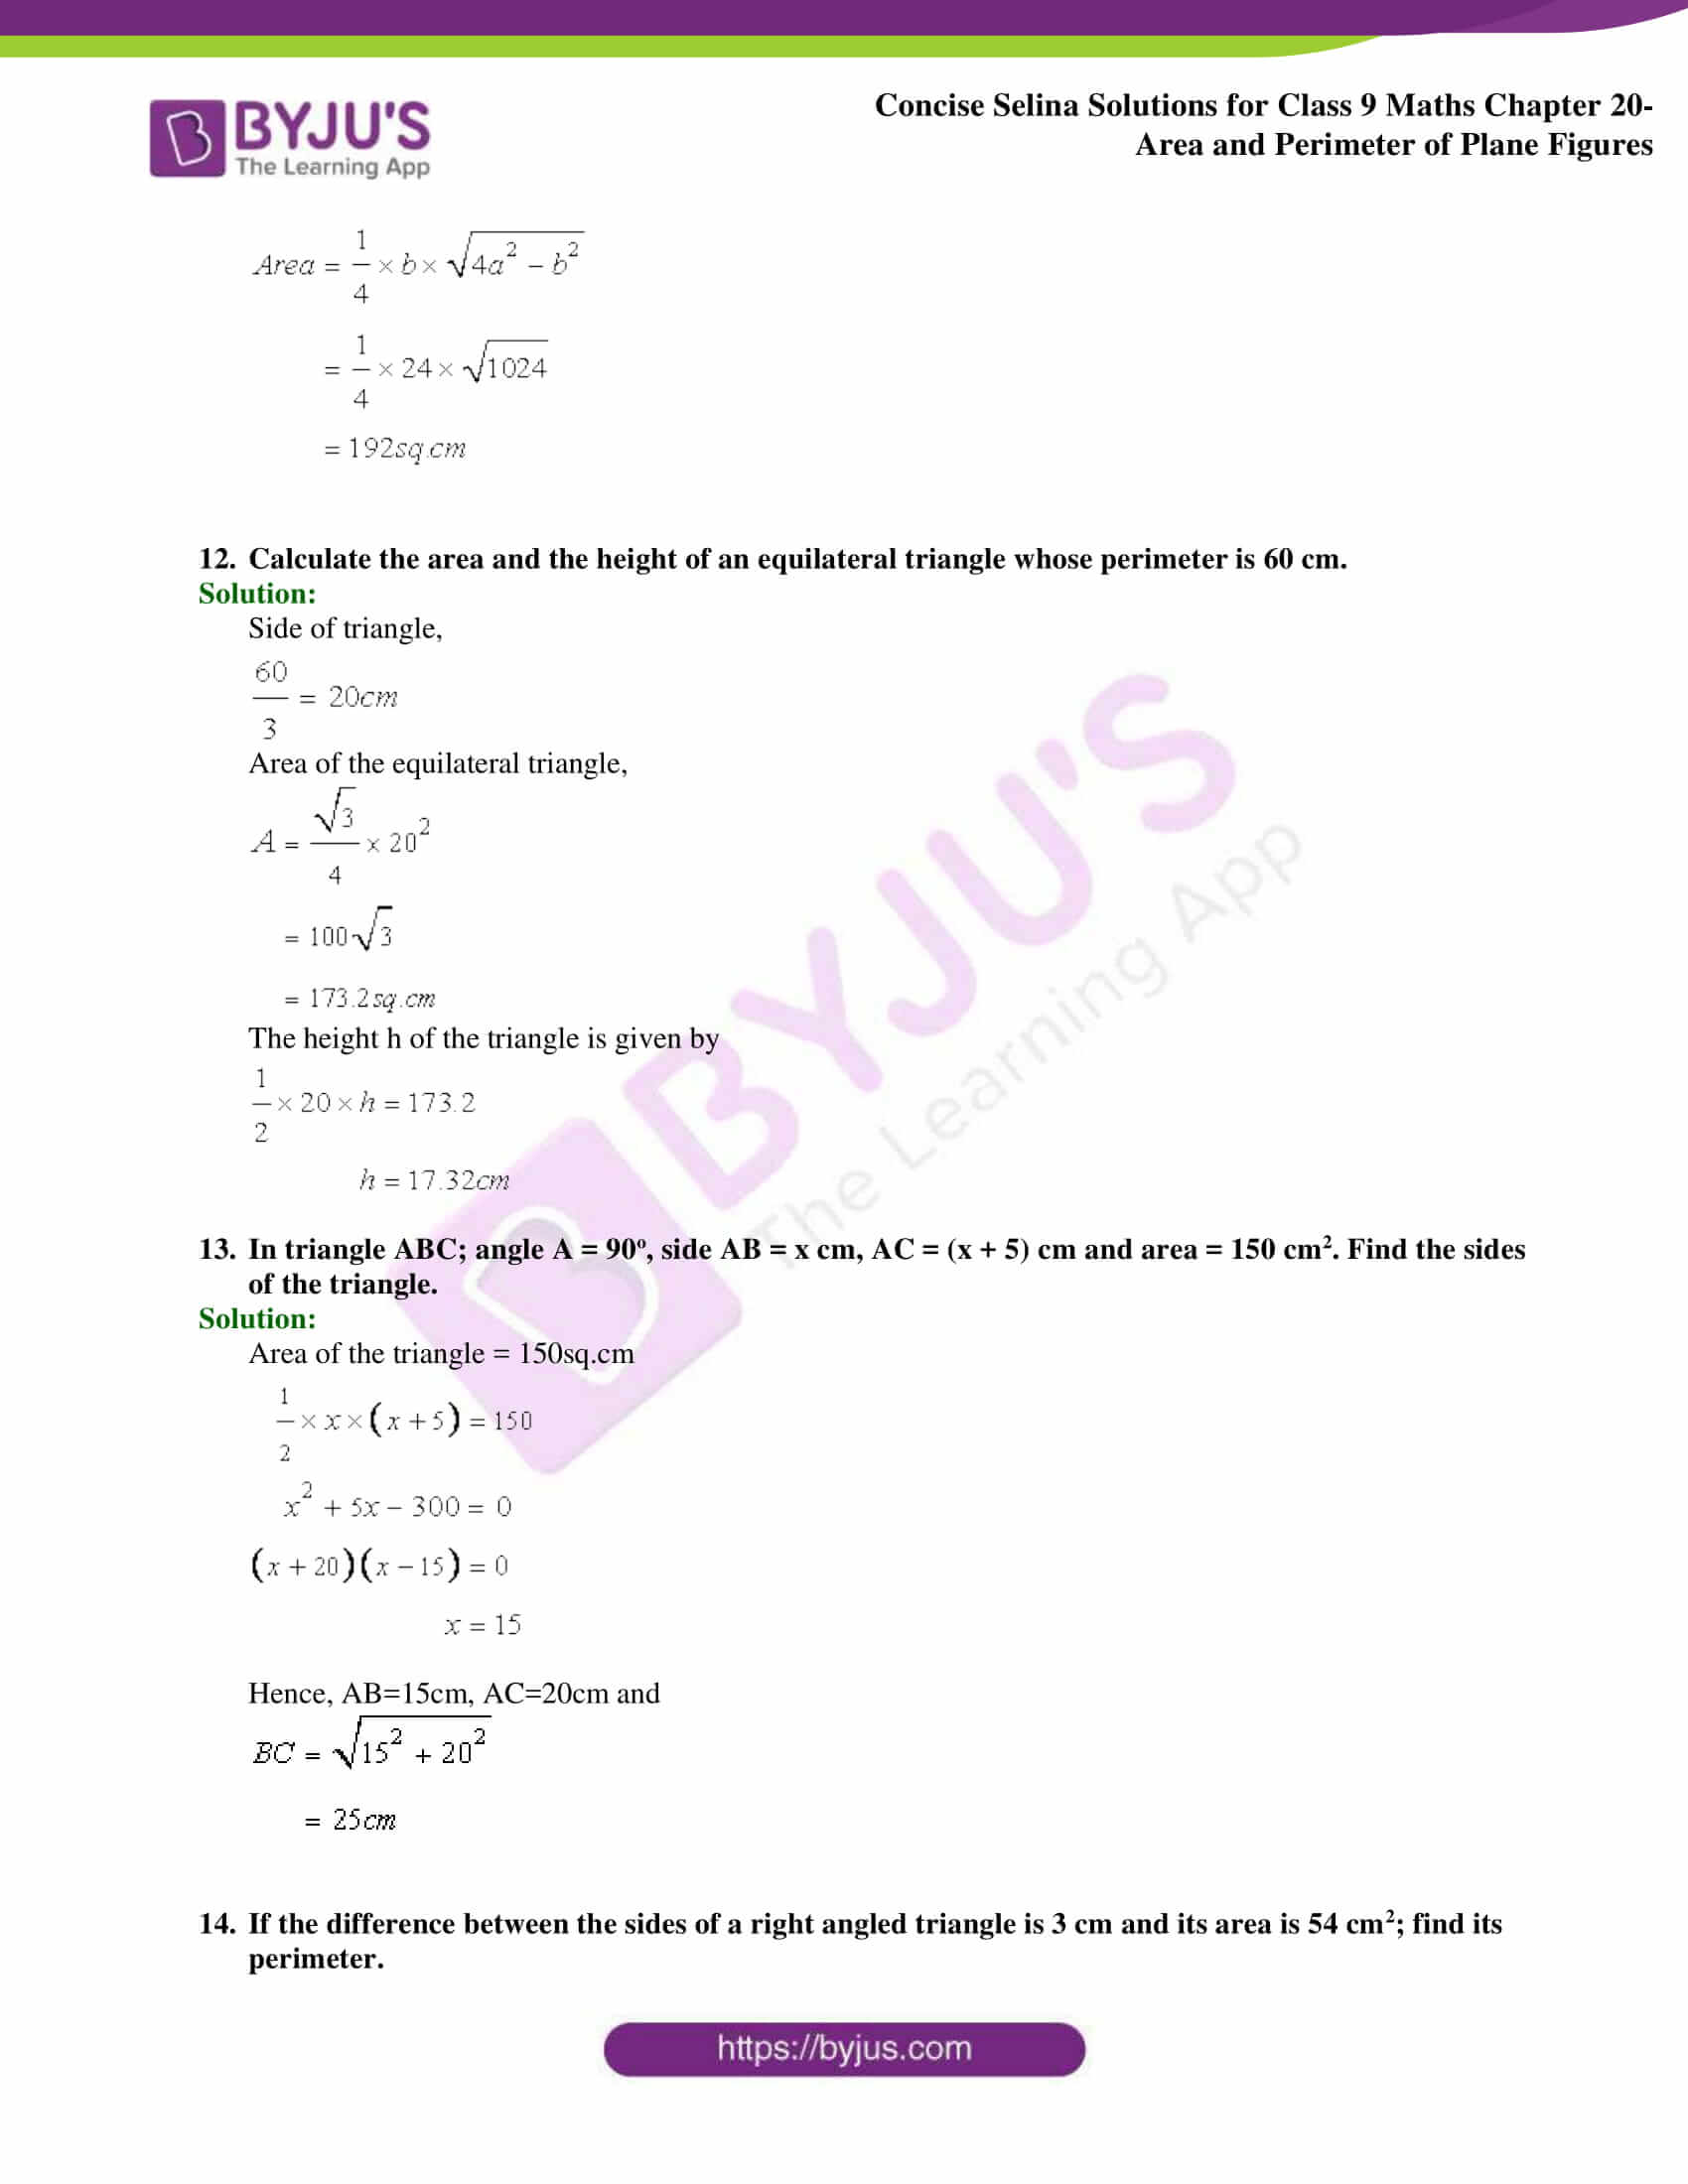 Concise Selina Solutions Class 9 Maths Chapter 20 Area and Perimeter of Plane part 09